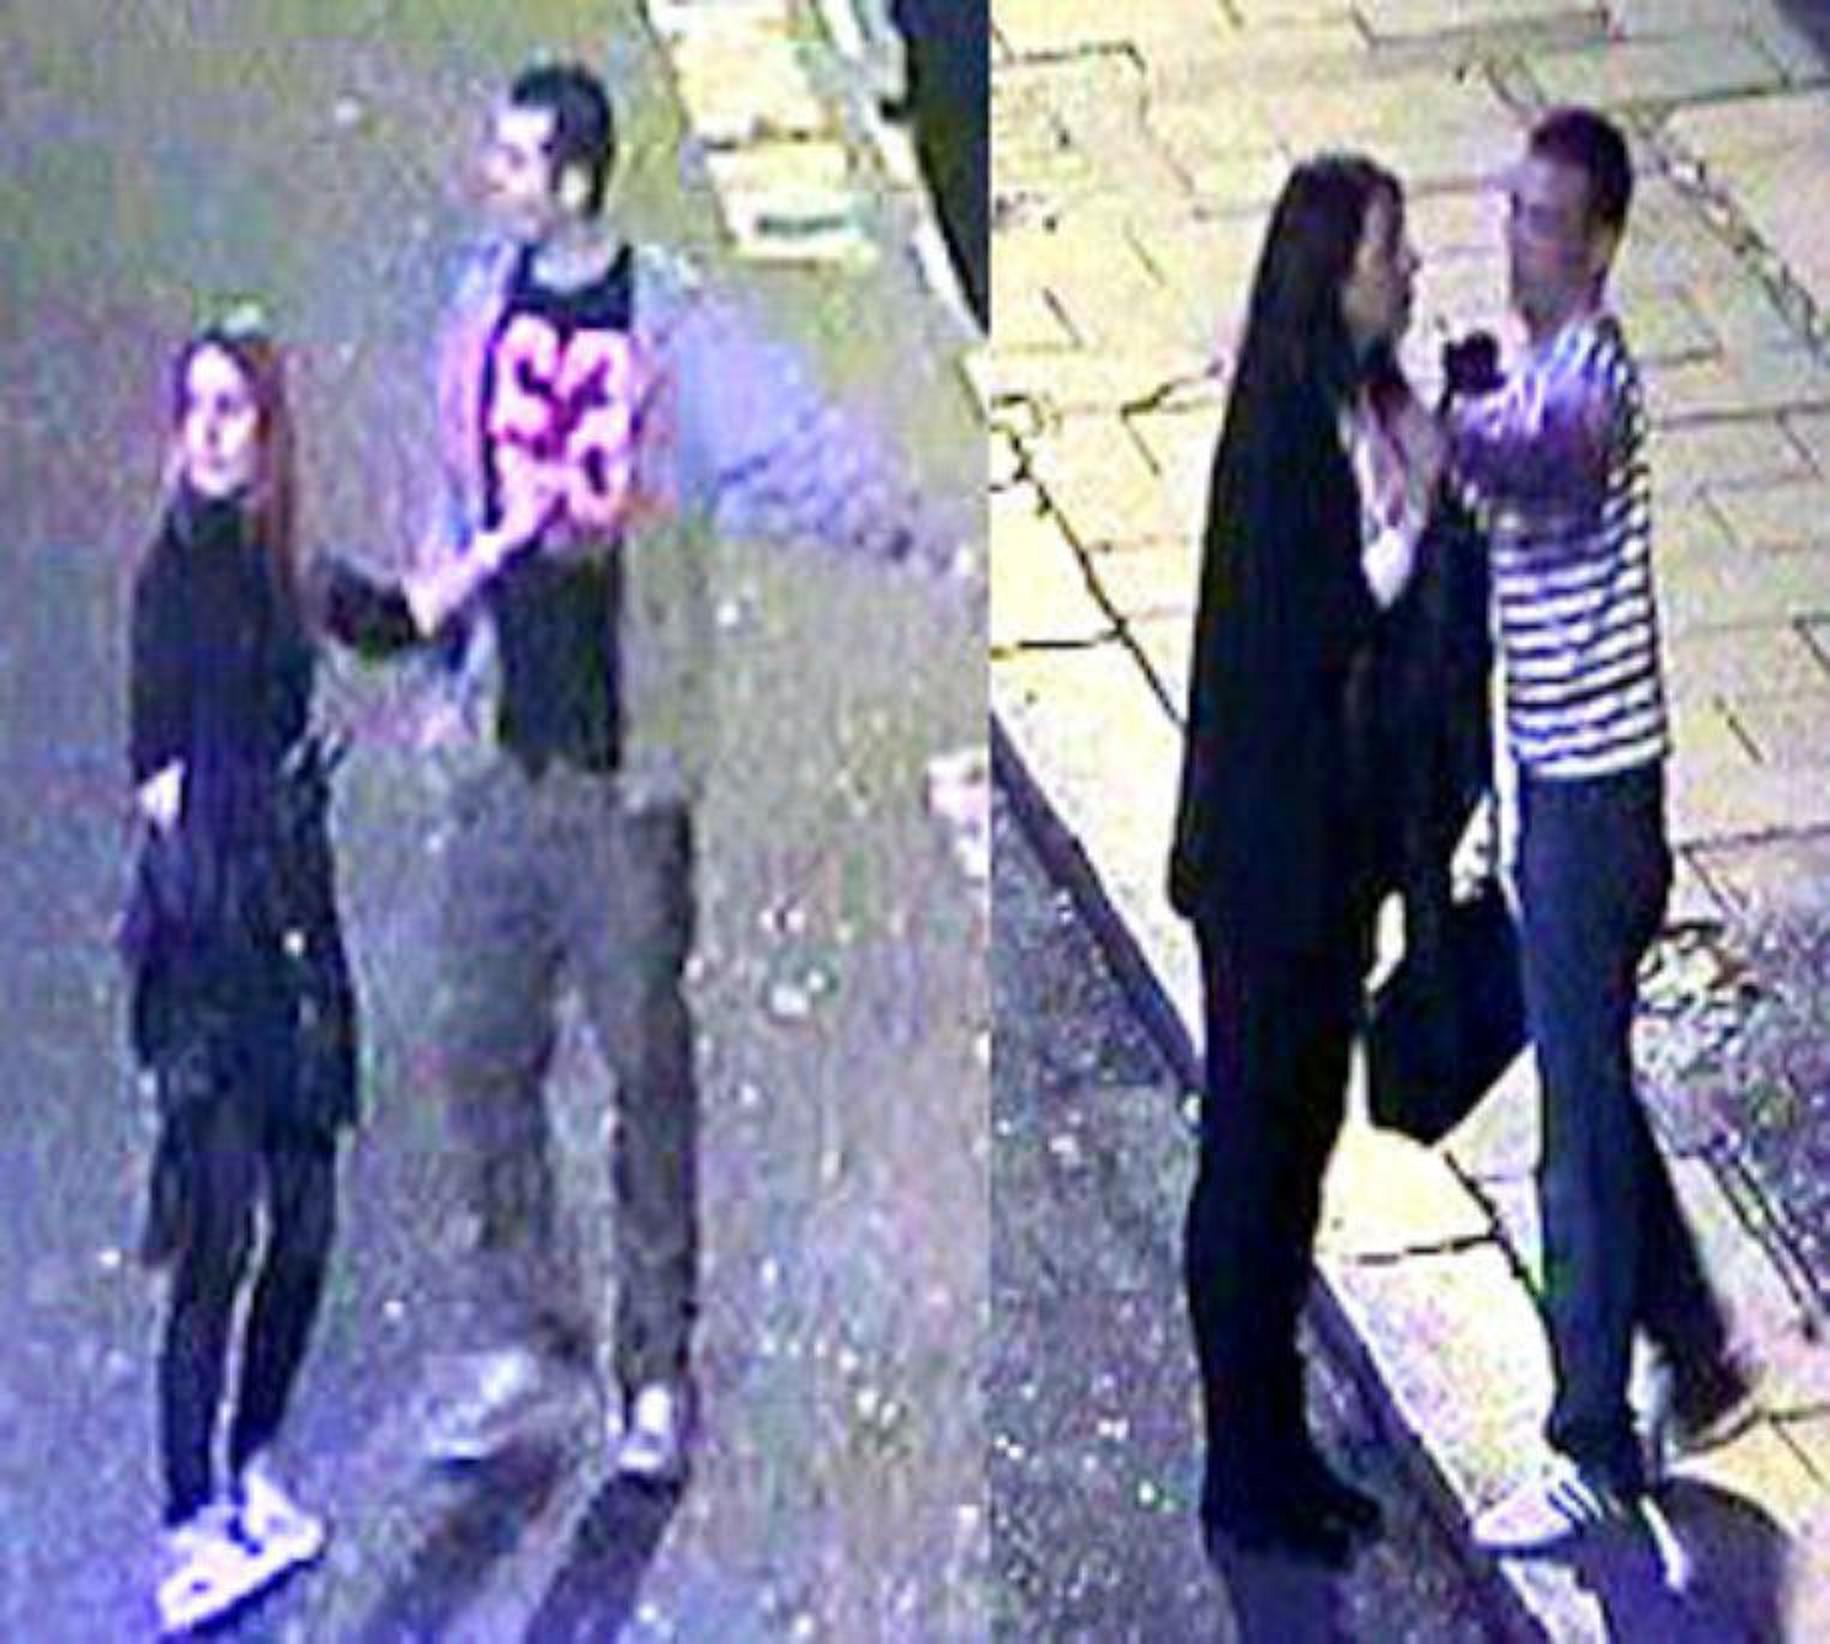 Police believe these people witnessed the attack